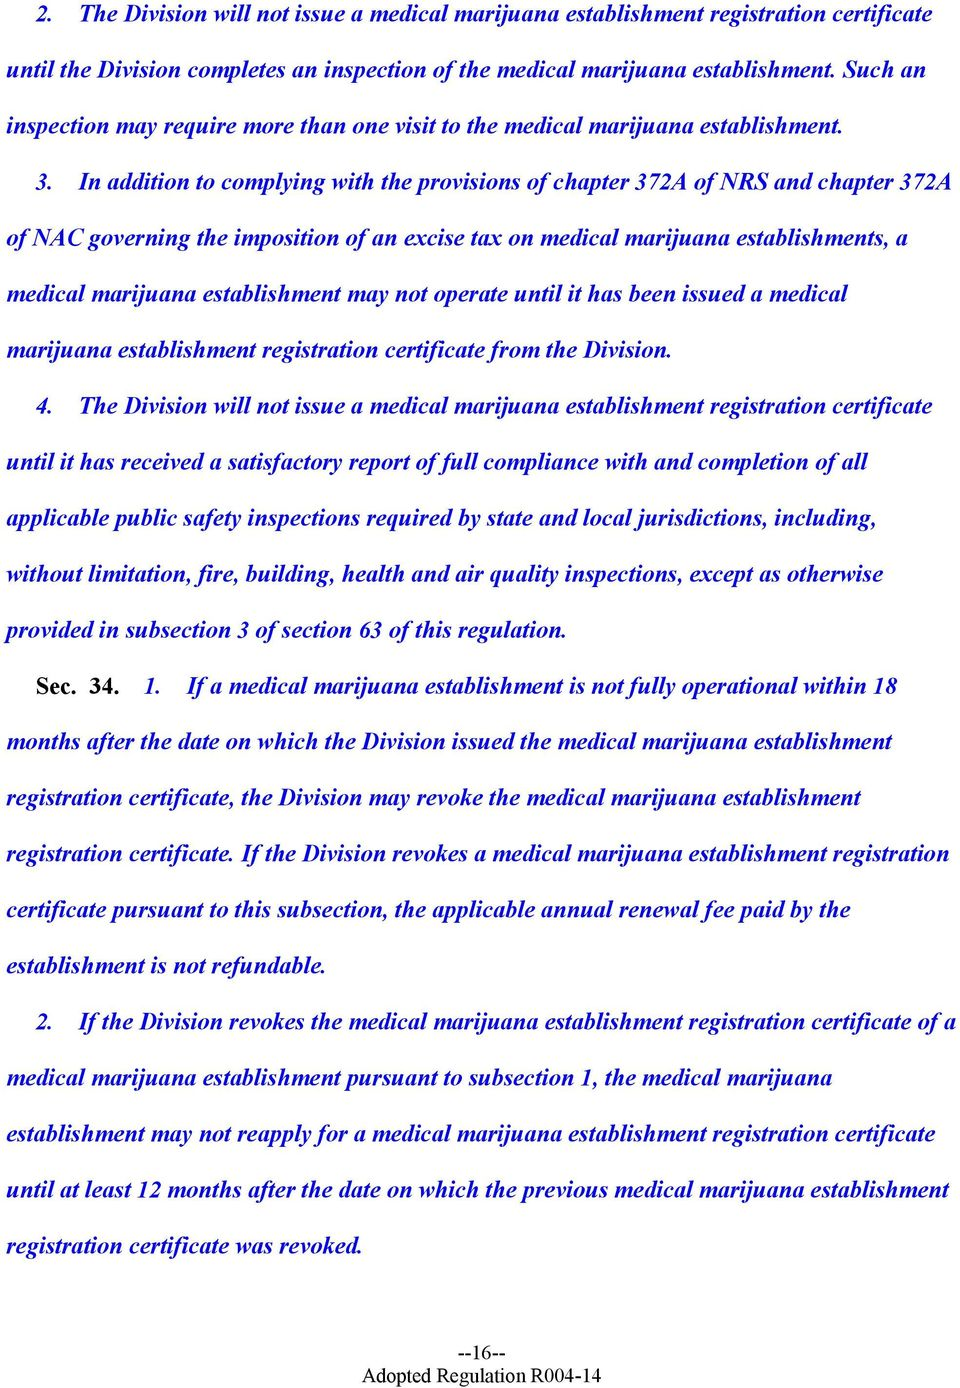 In addition to complying with the provisions of chapter 372A of NRS and chapter 372A of NAC governing the imposition of an excise tax on medical marijuana establishments, a medical marijuana